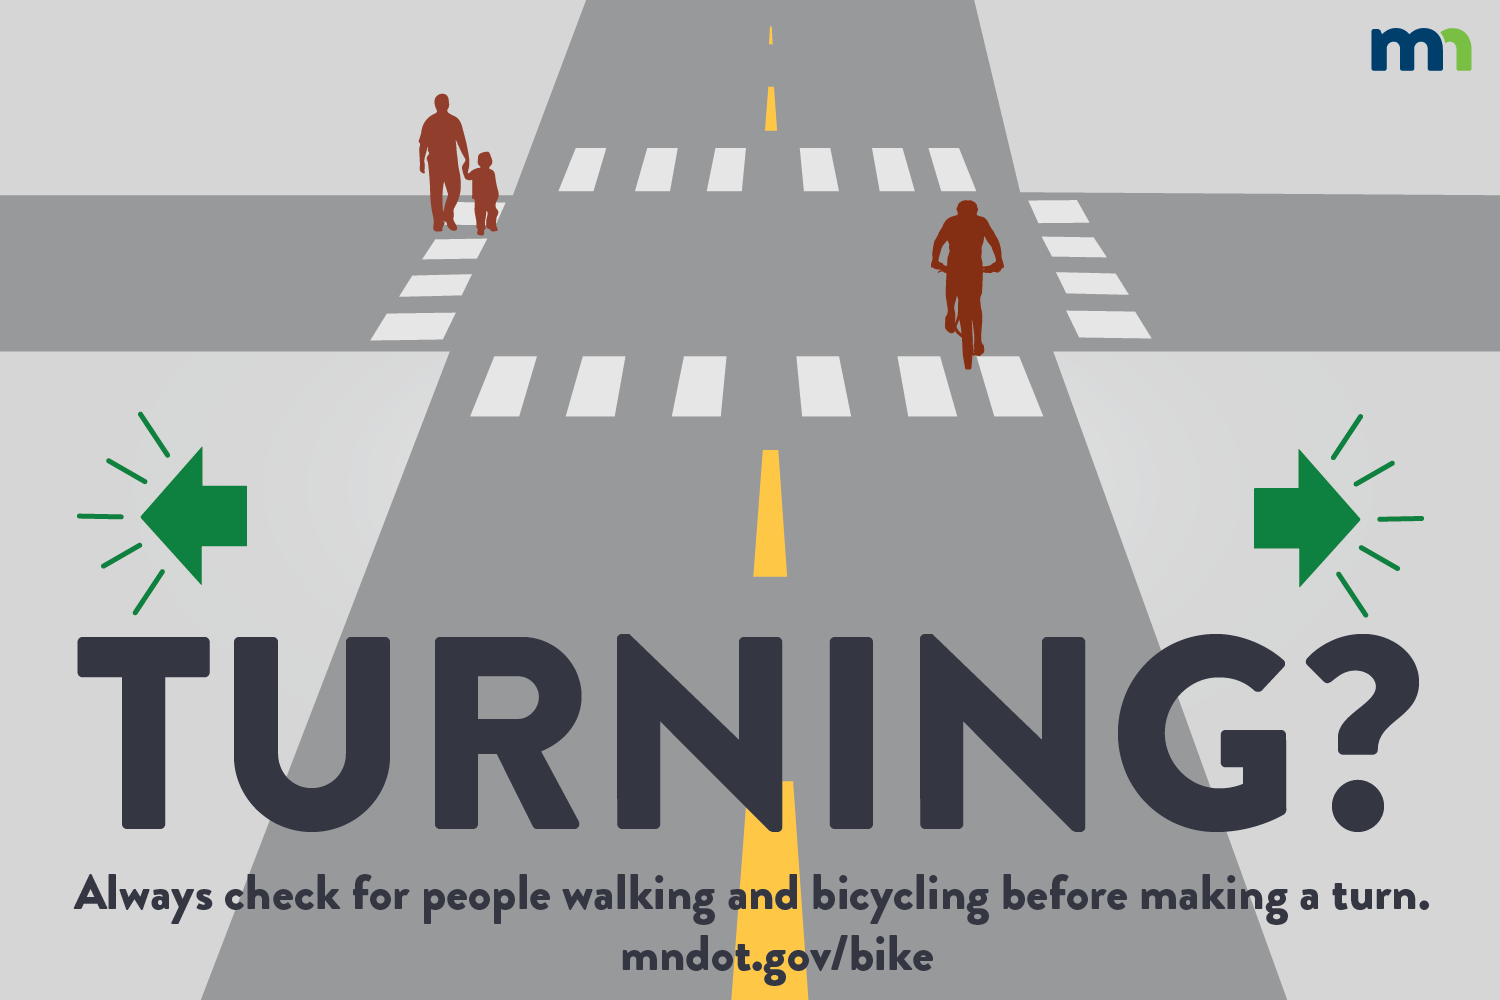 Turning?: Always check for people walking and bicycling before making a turn.